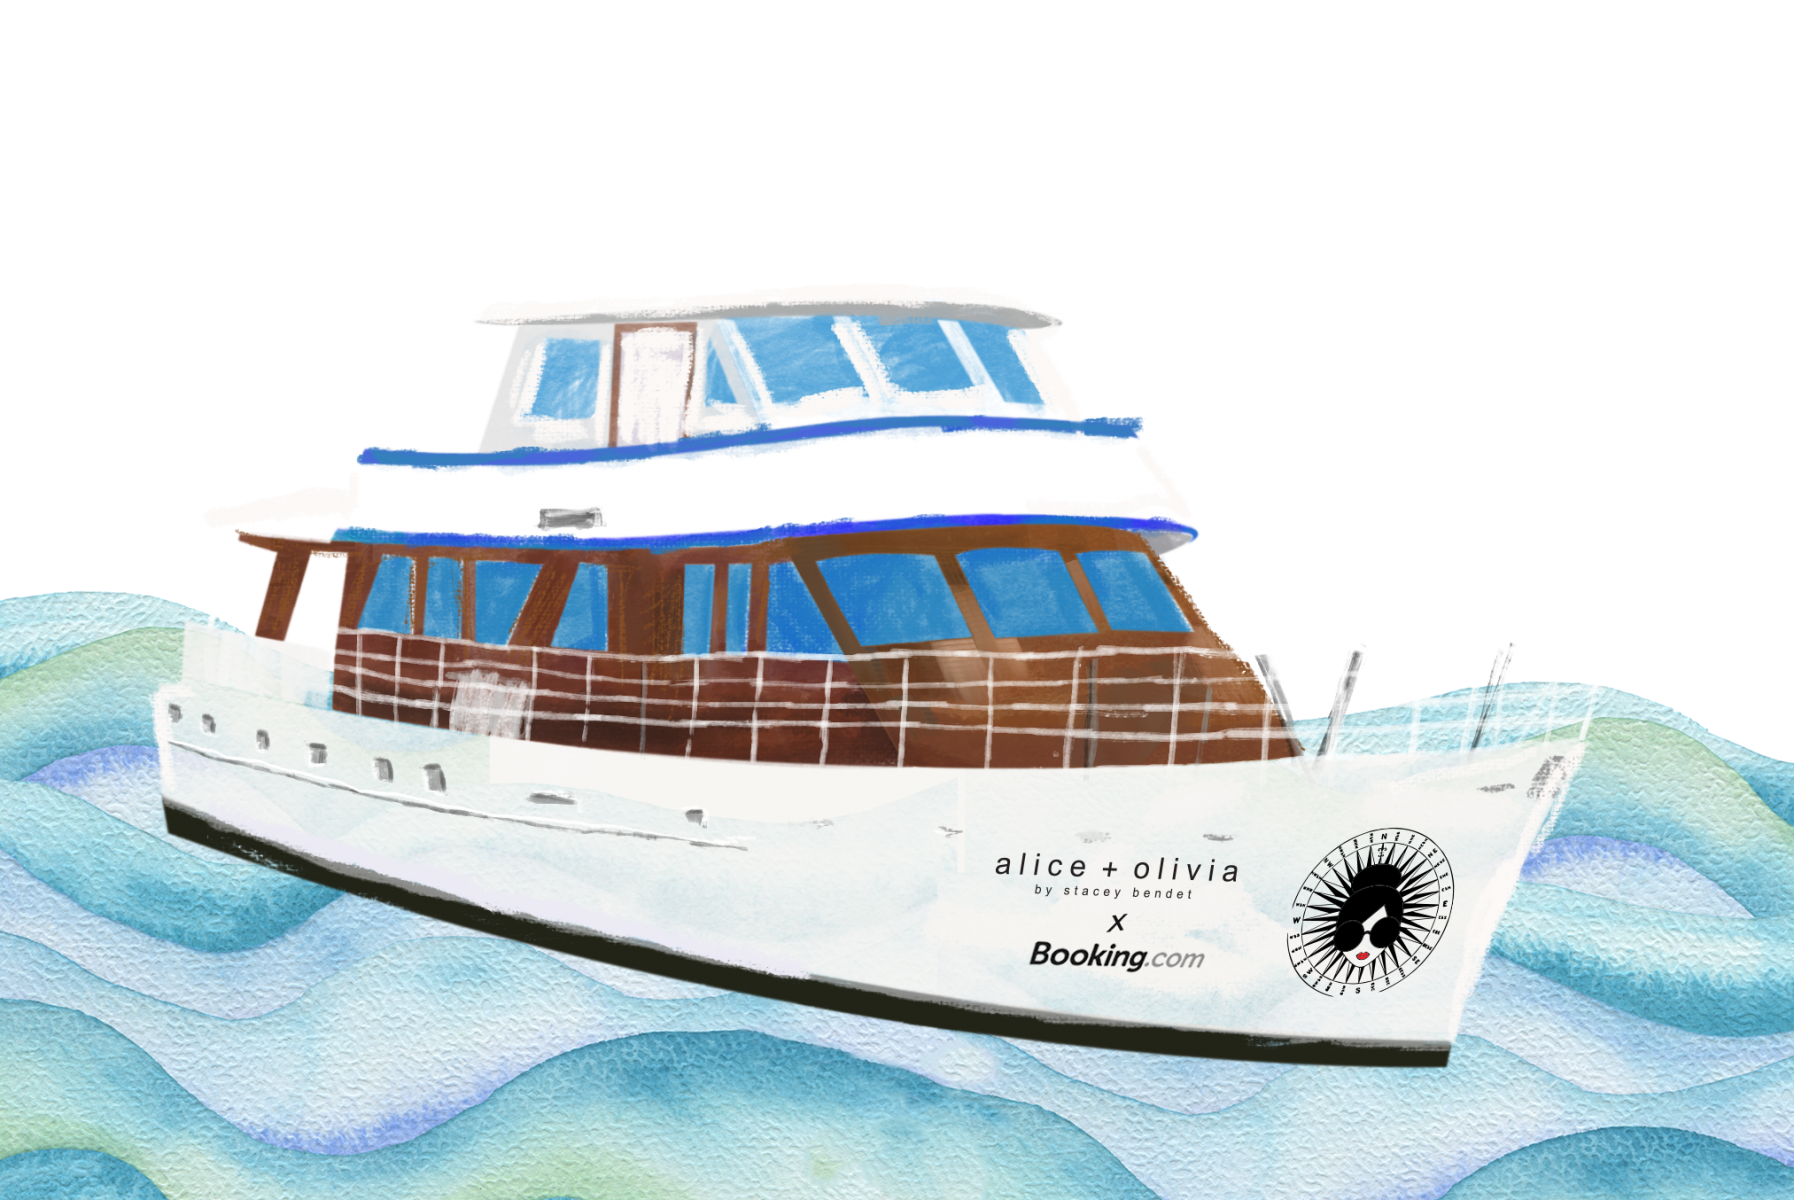 alice + olivia Fashion Yacht